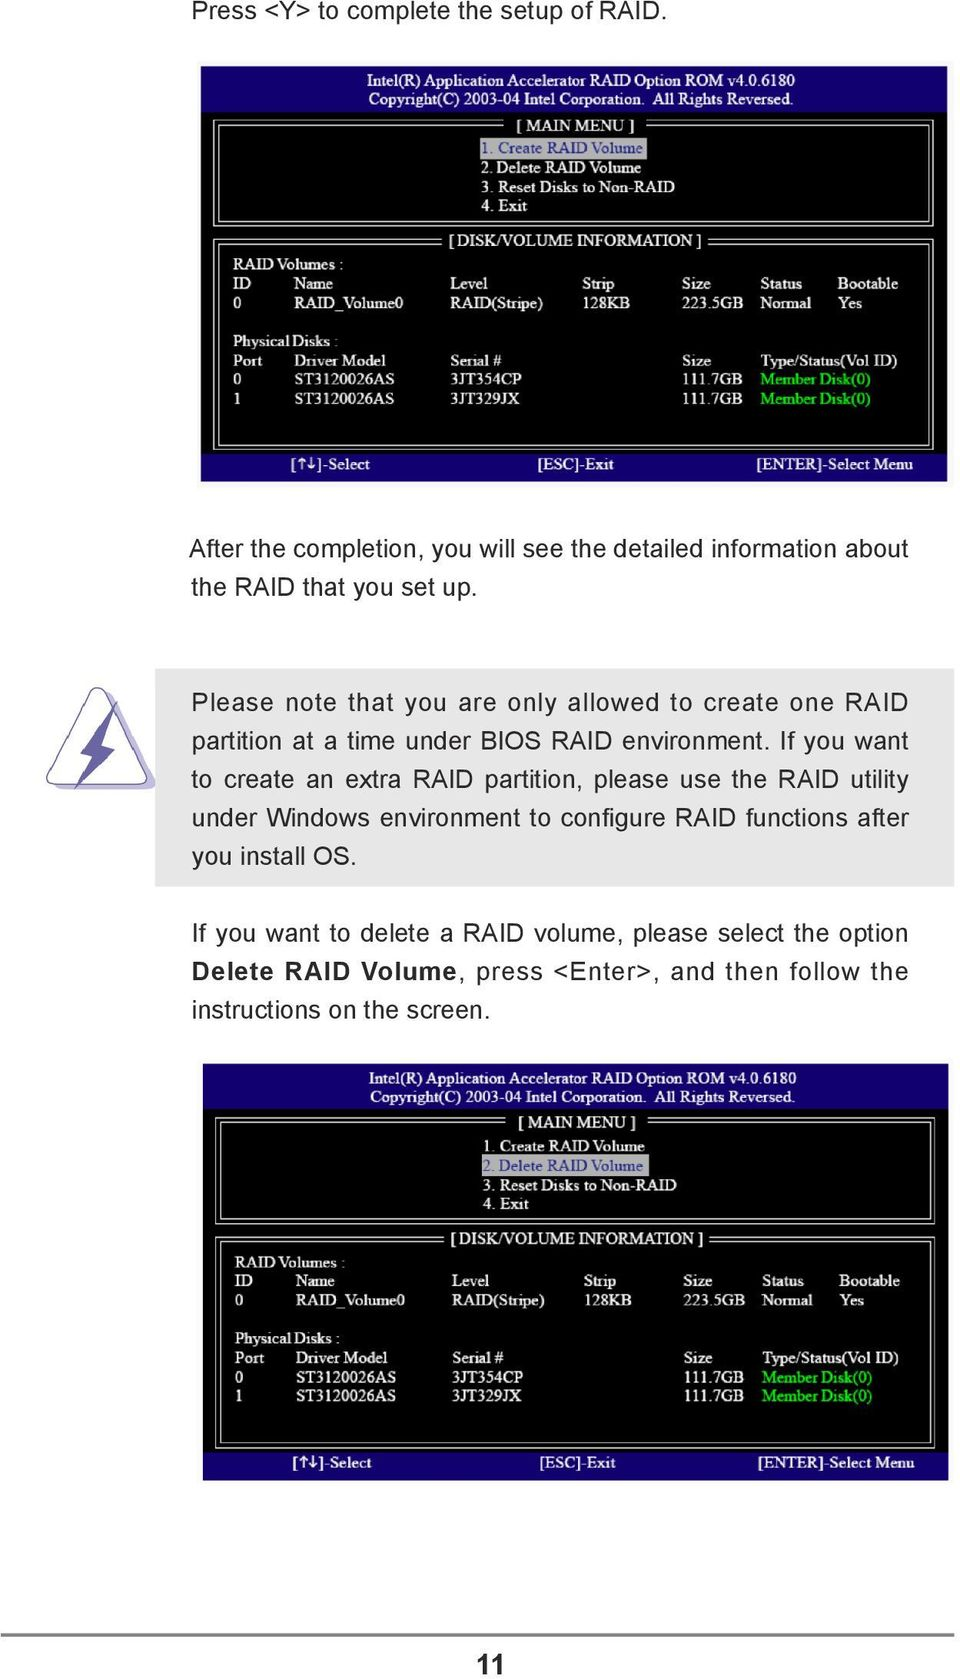 If you want to create an extra RAID partition, please use the RAID utility under Windows environment to configure RAID functions after